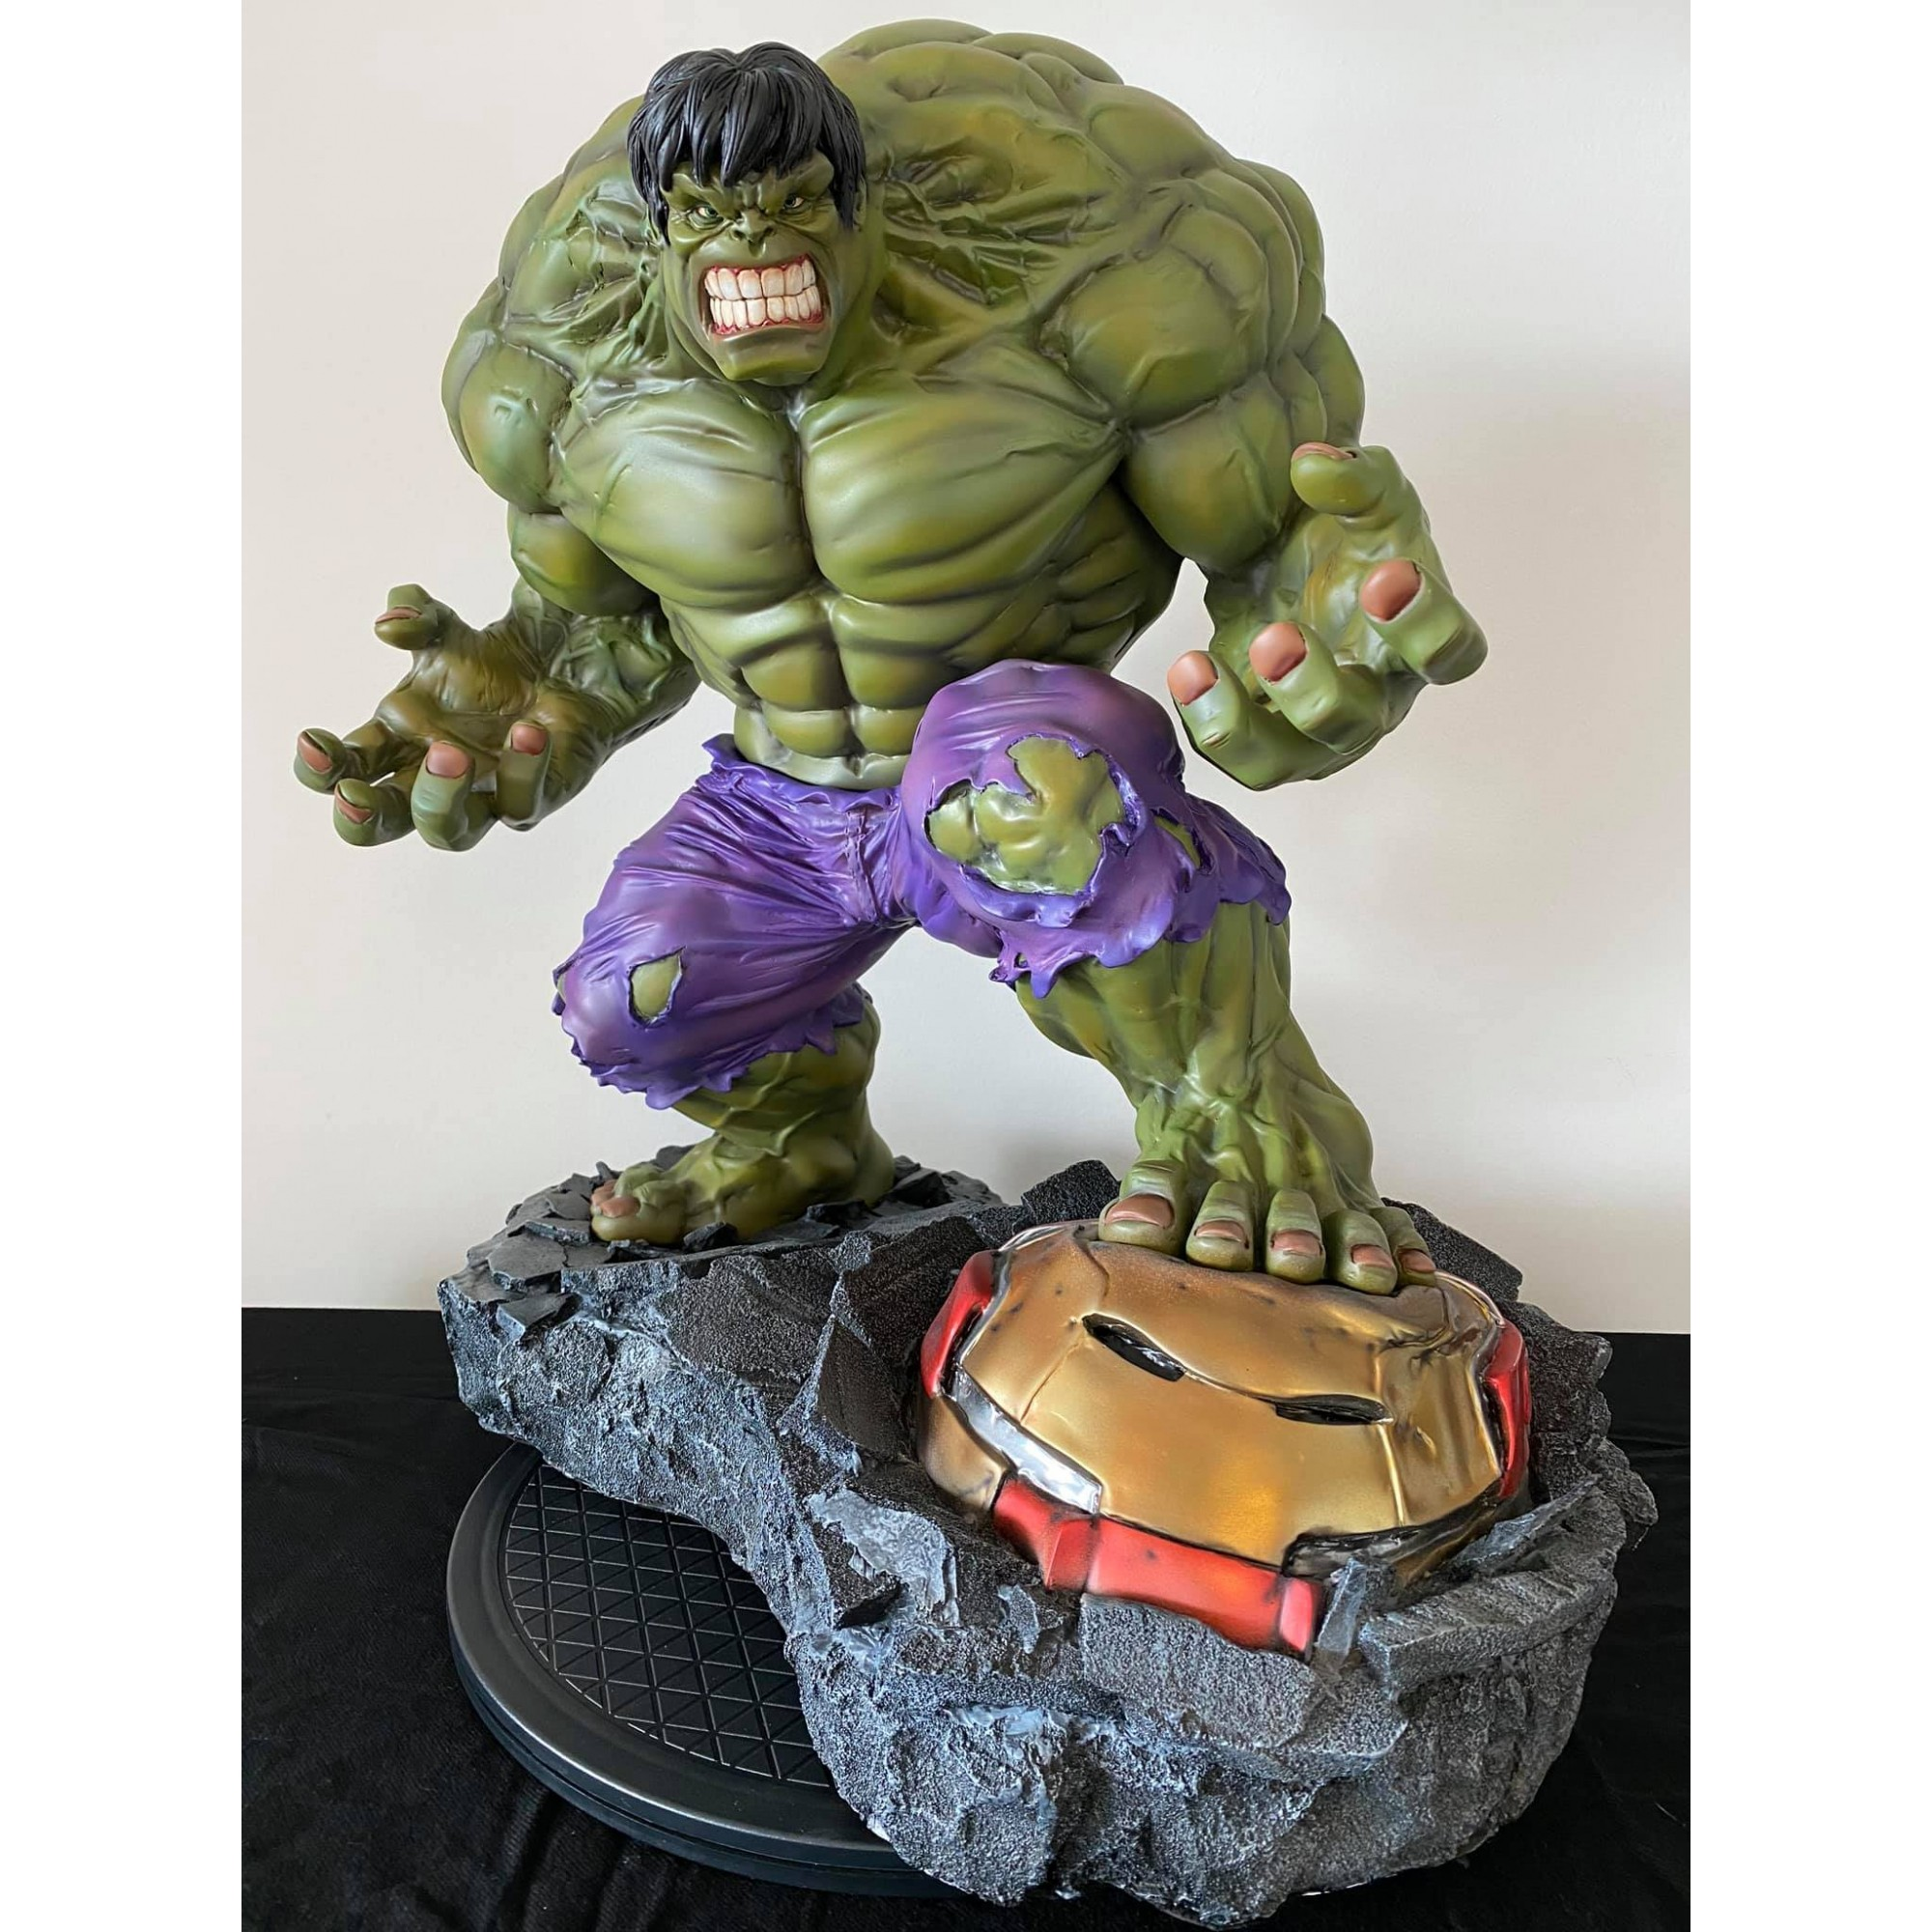 Mike Deodato Hulk 1/4 Custom Statue sculpted by Troy McDevitt e Painted by Aloir Marçal   - Movie Freaks Collectibles